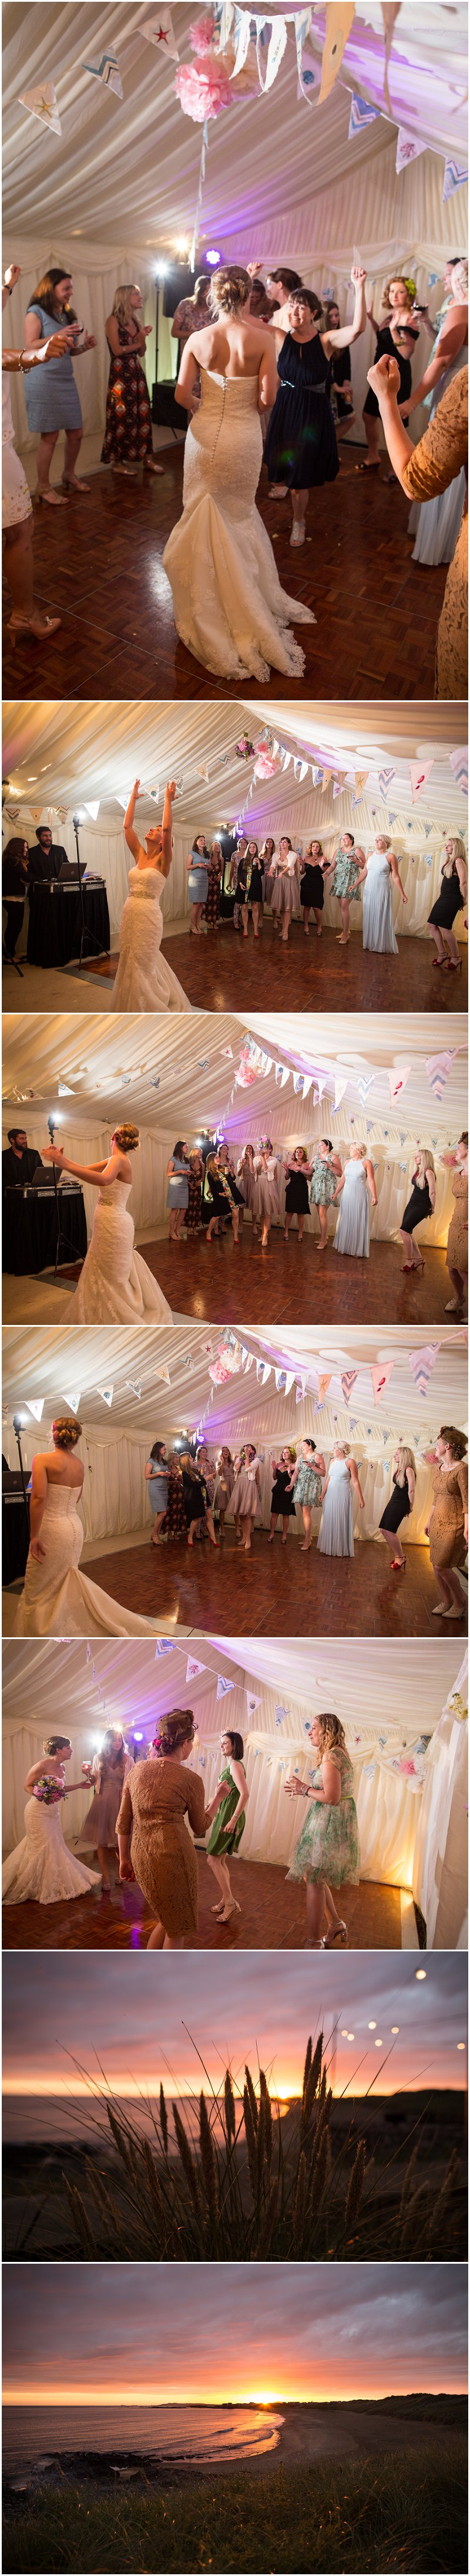 Tossing of the Boquet and Sunset at Anglesey Marquee Wedding Wales